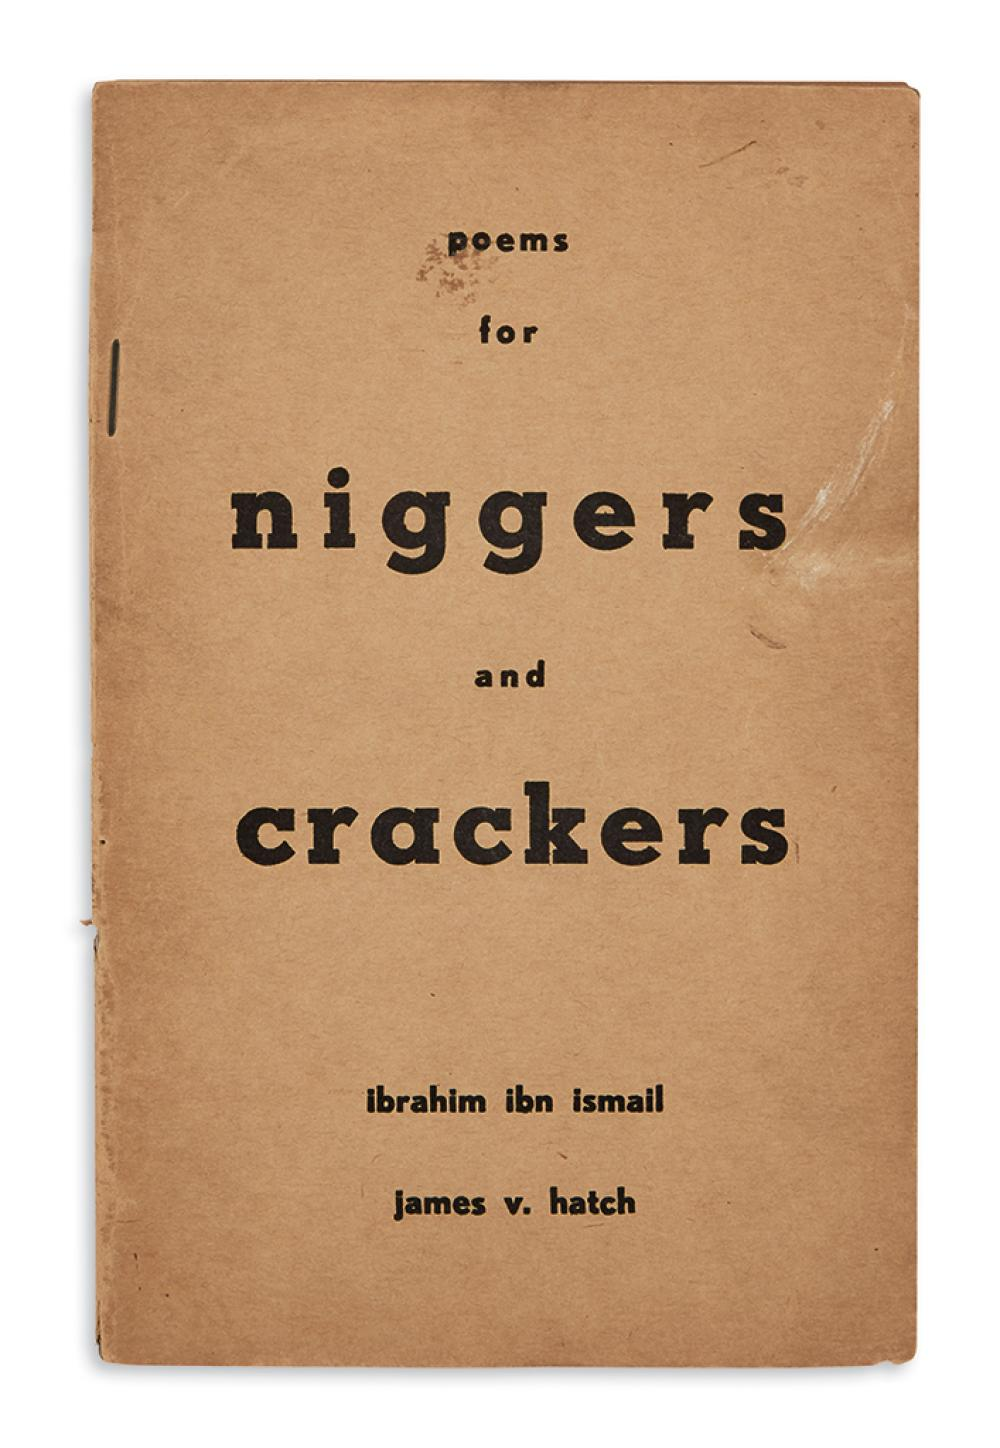 (LITERATURE.) Ismail, Ibrahim ibn; and James V. Hatch. Poems for Niggers and Crackers.